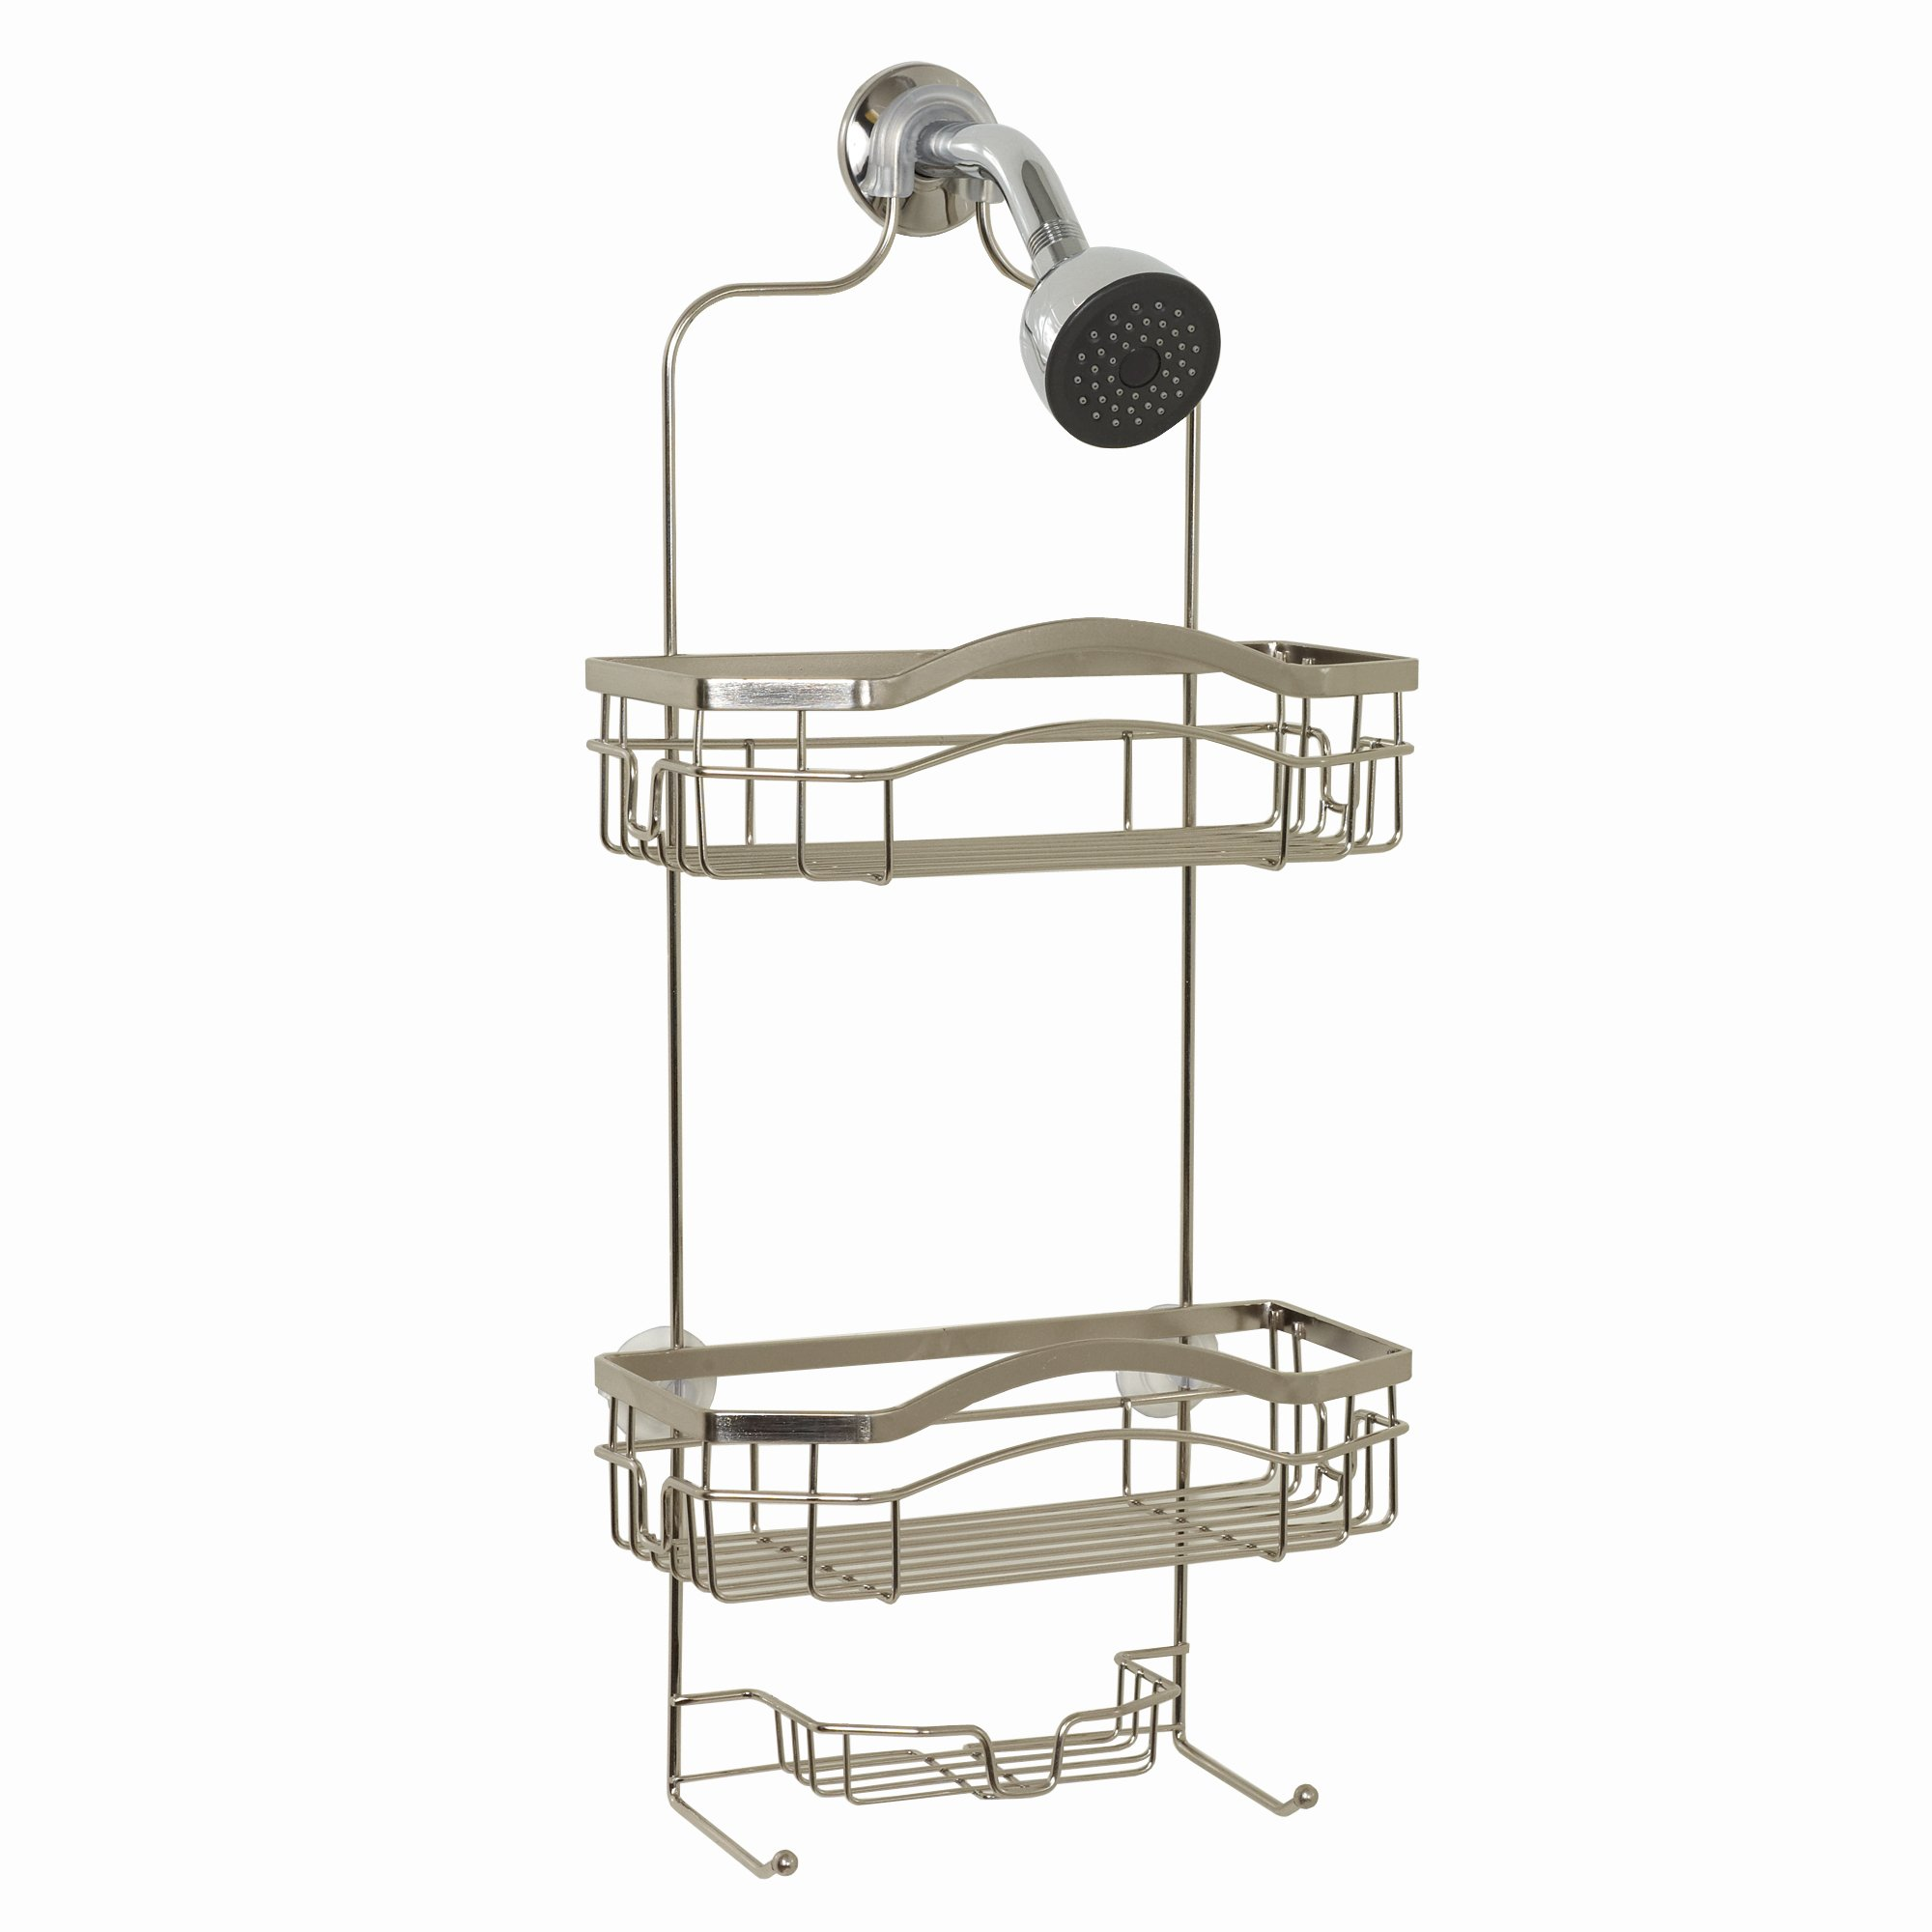 ZPC Zenith Products E7523STBB Over-The-Showerhead Caddy